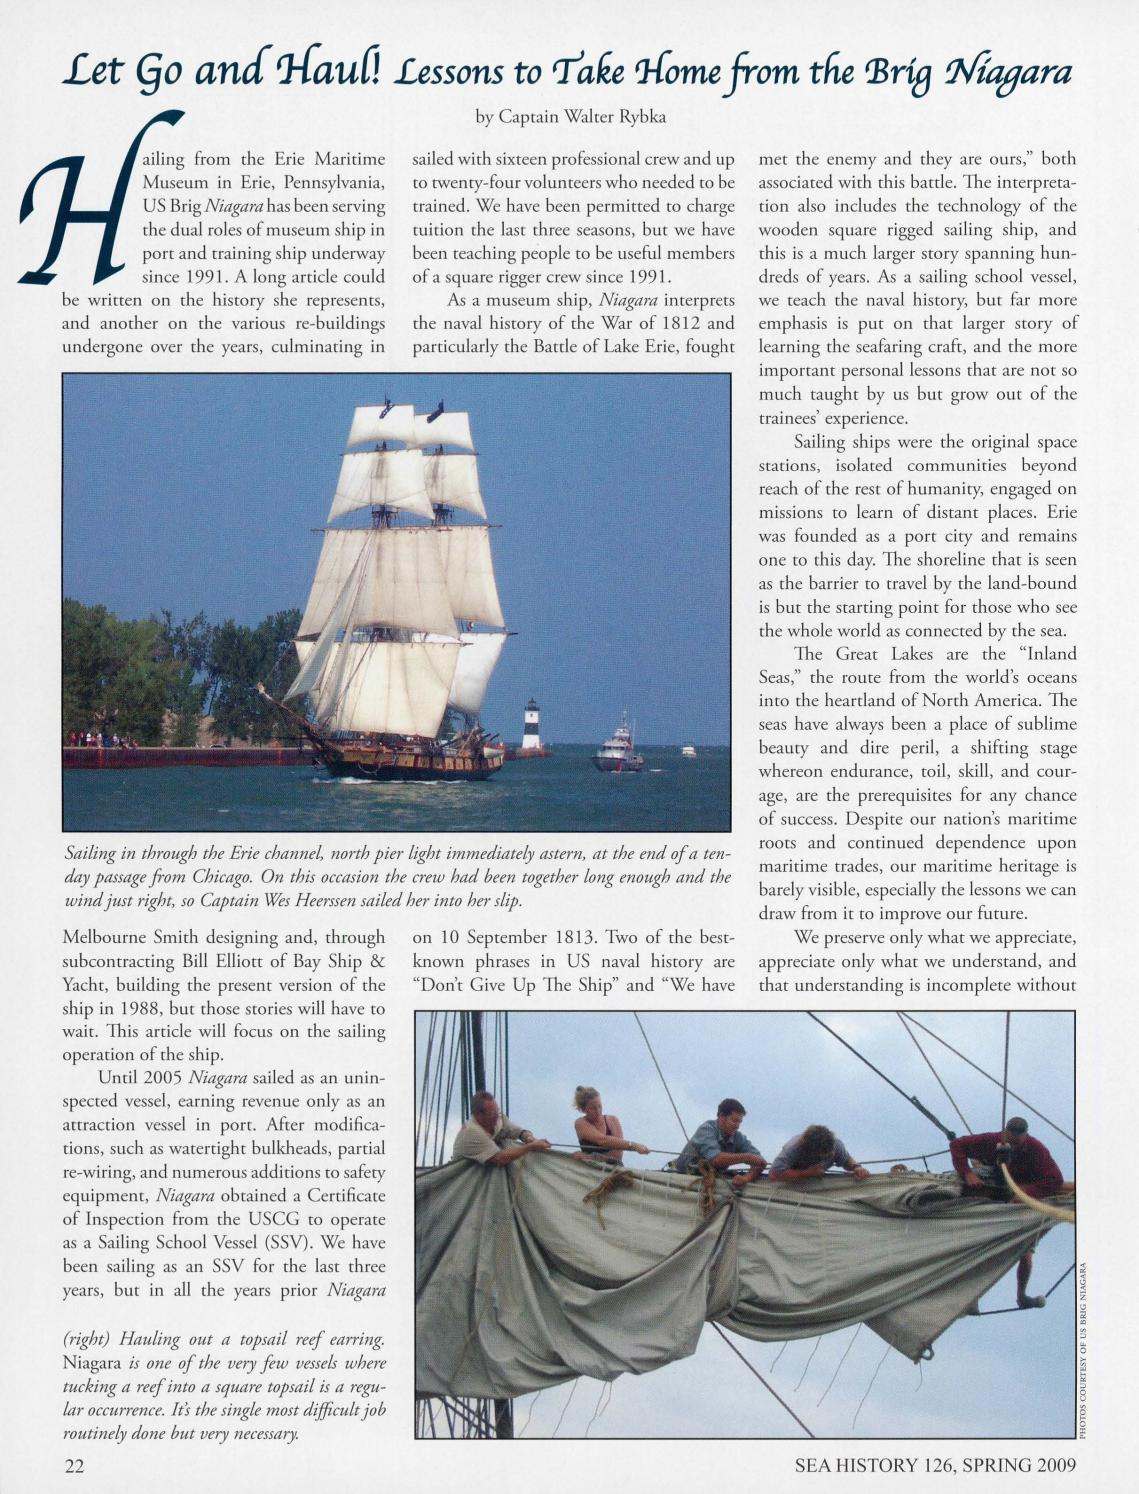 Sea History 126 Spring 2009 By National Maritime Historical